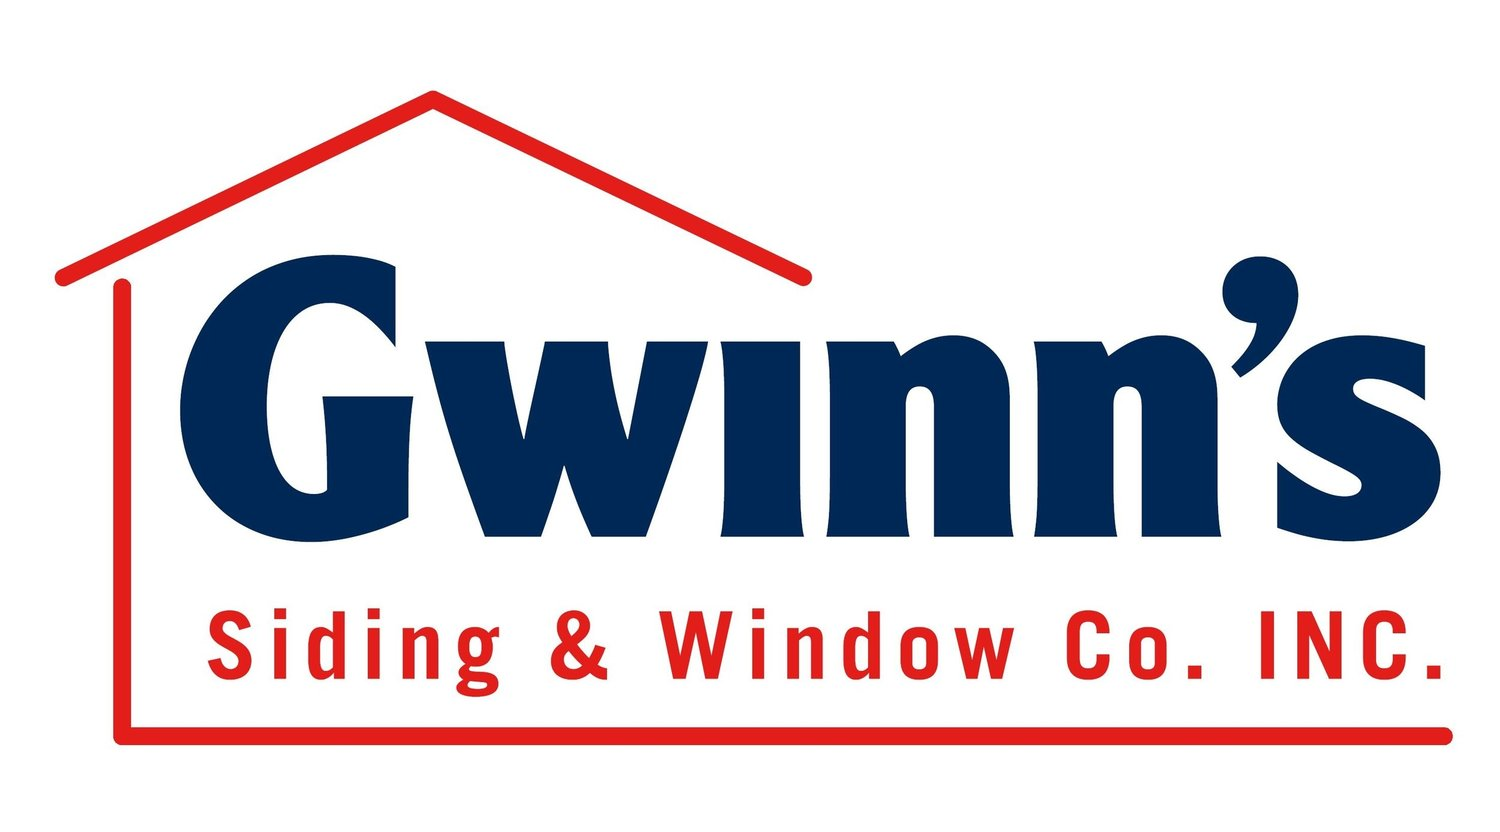 GWINN'S SIDING AND WINDOW COMPANY #2, INC.